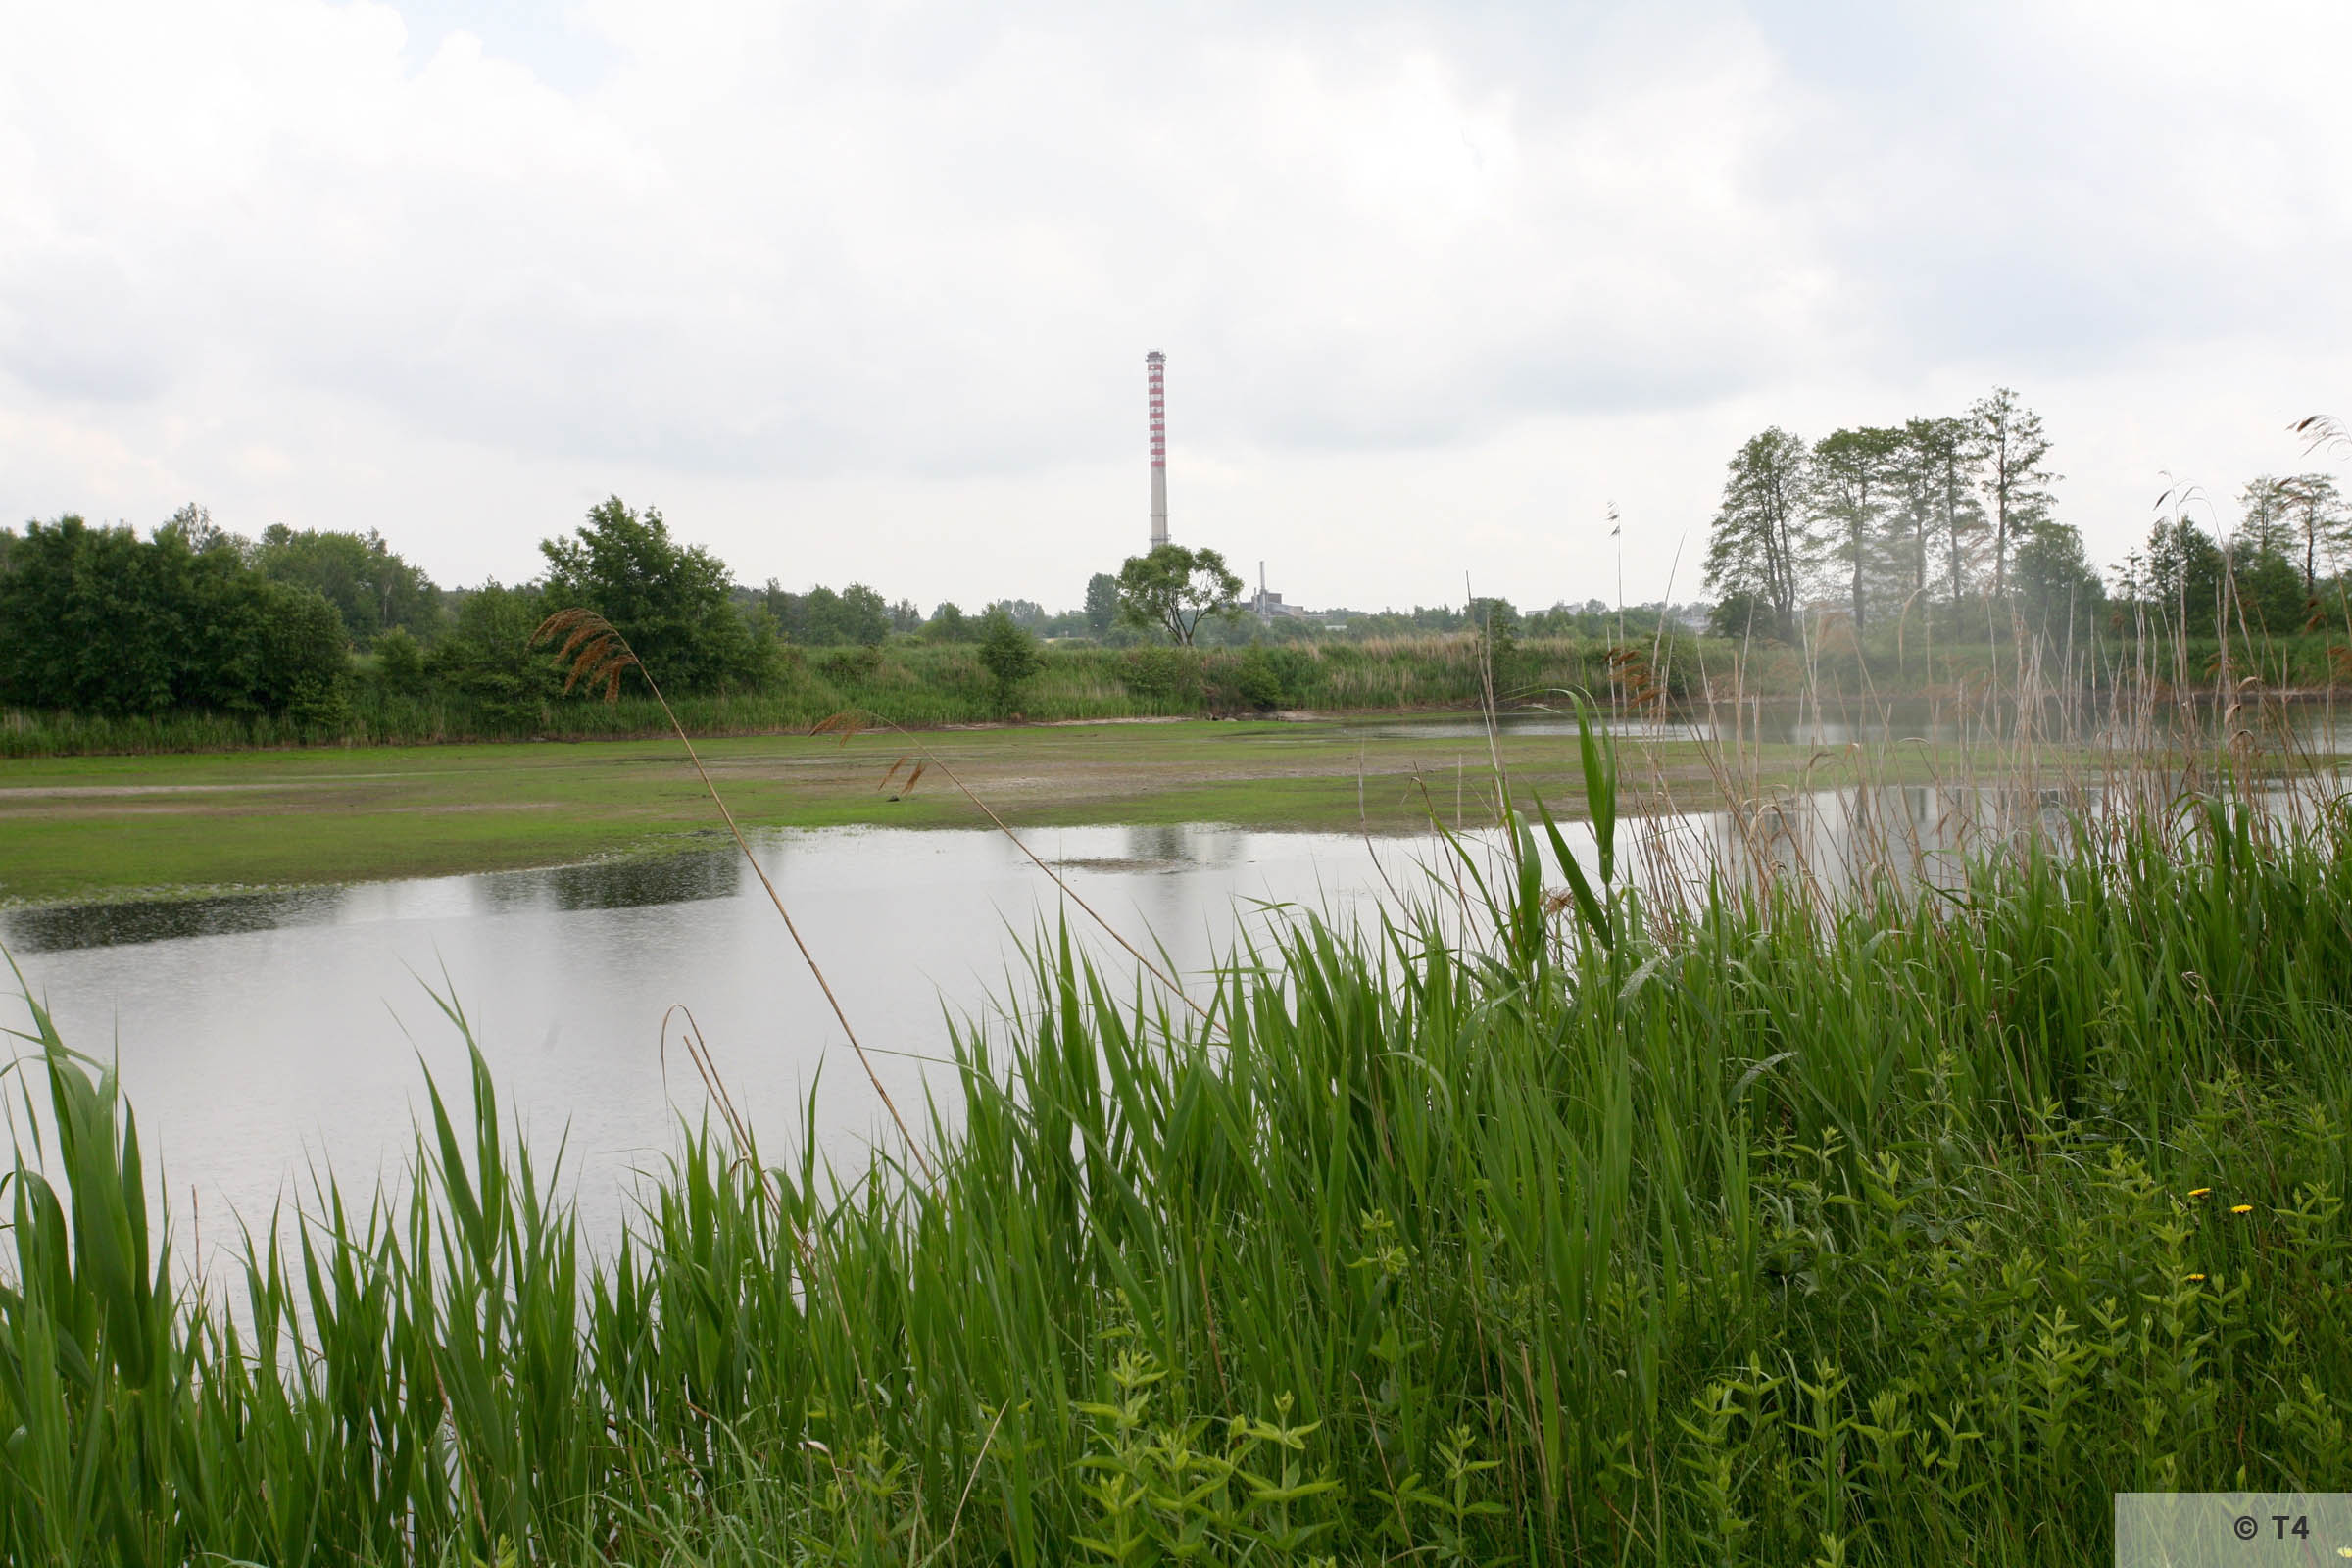 Ponds near the Bata factory. 2006 T4 4924